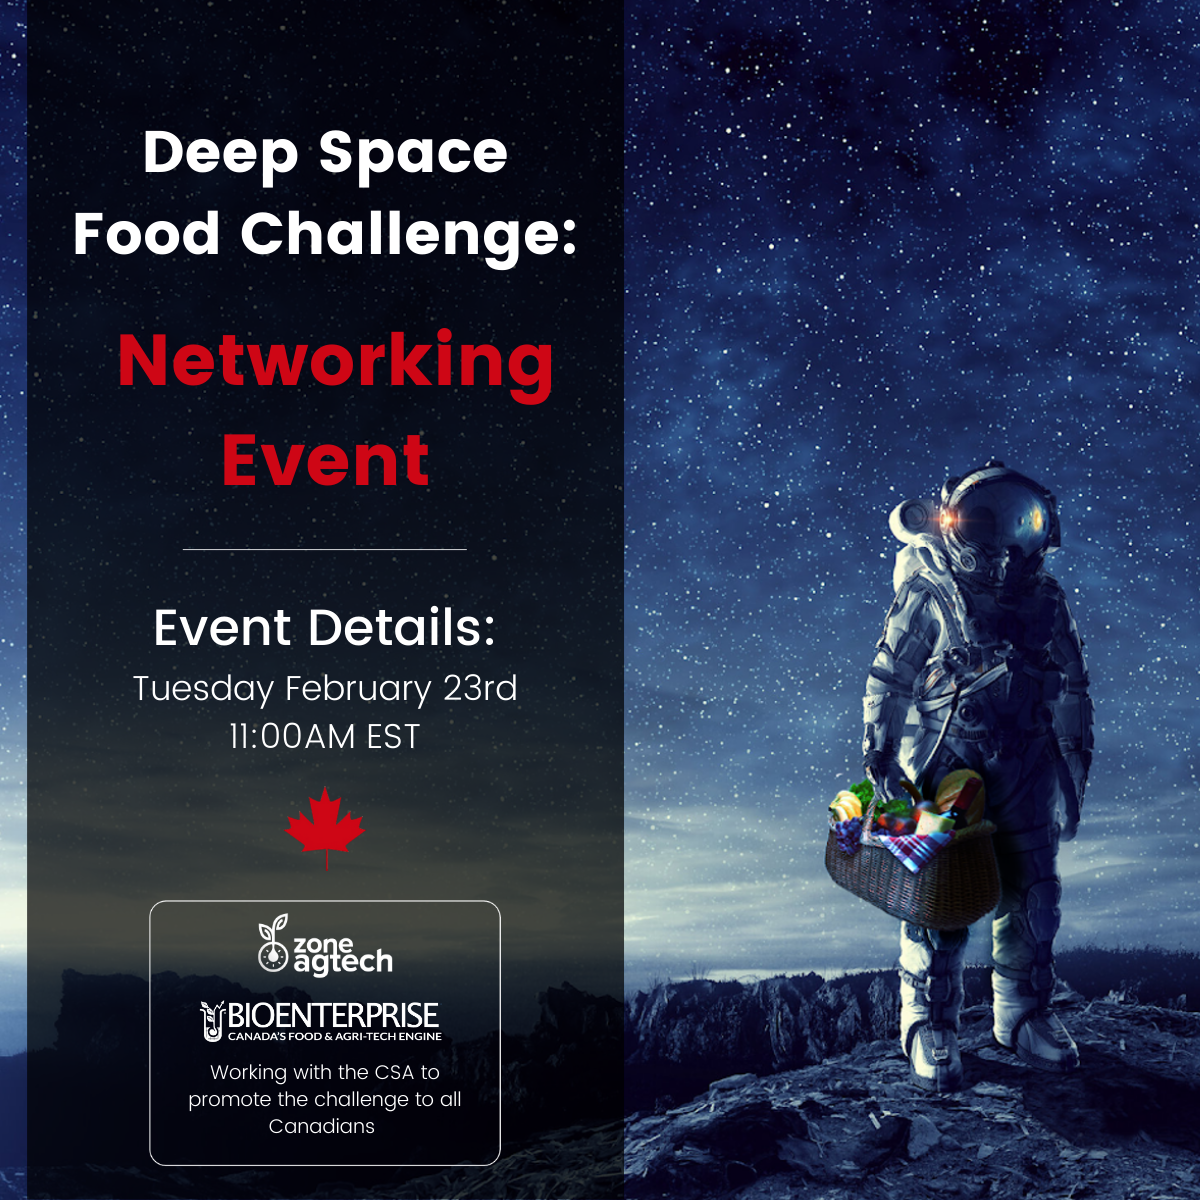 DEEP SPACE FOOD CHALLENGE NETWORKING EVENT